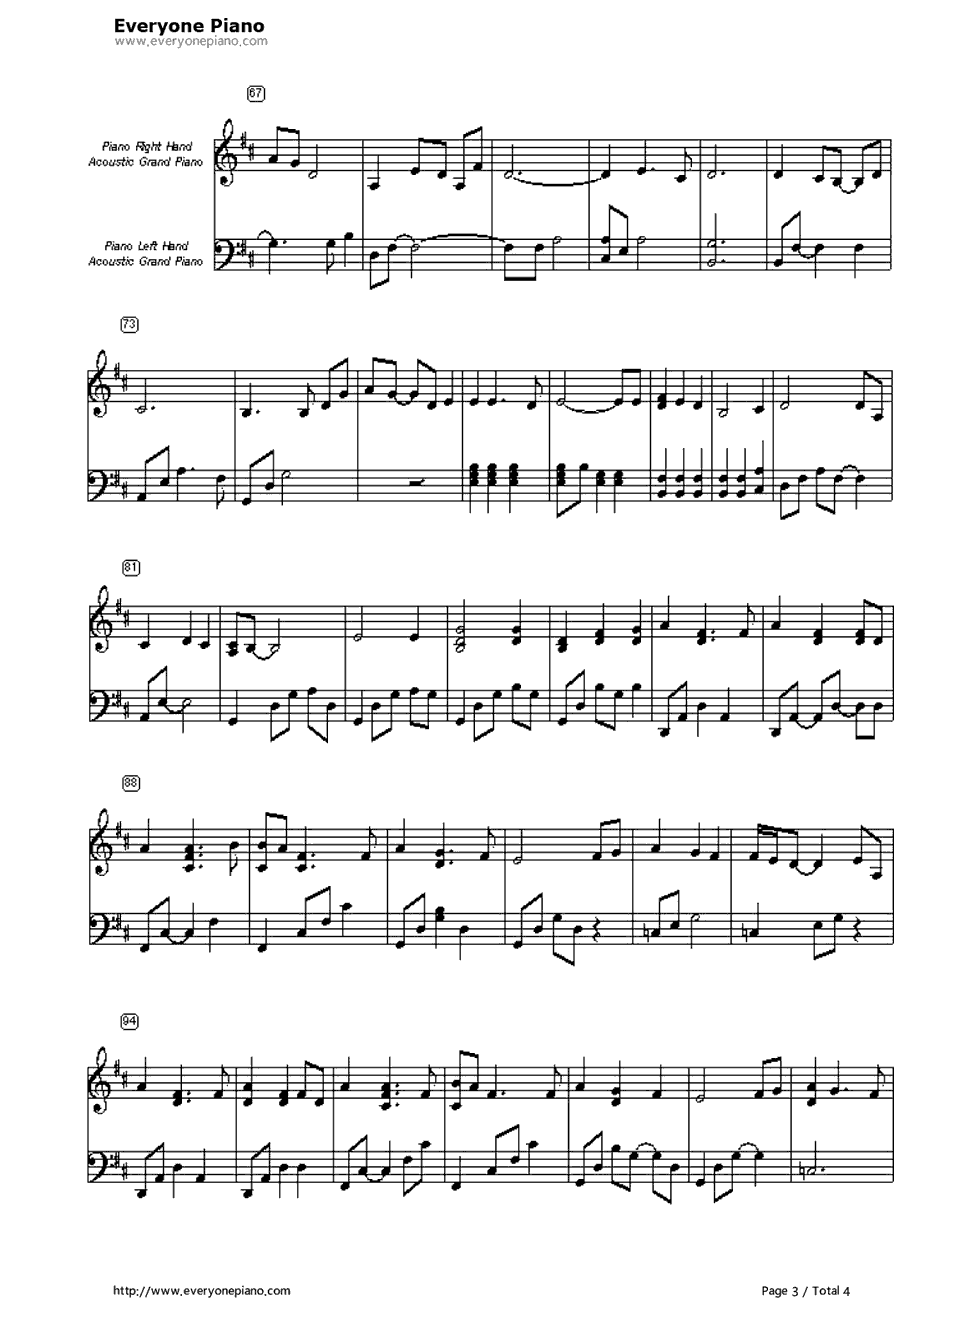 Open arms journey stave preview 3 free piano sheet music piano listen now print sheet open arms journey stave preview 3 hexwebz Images